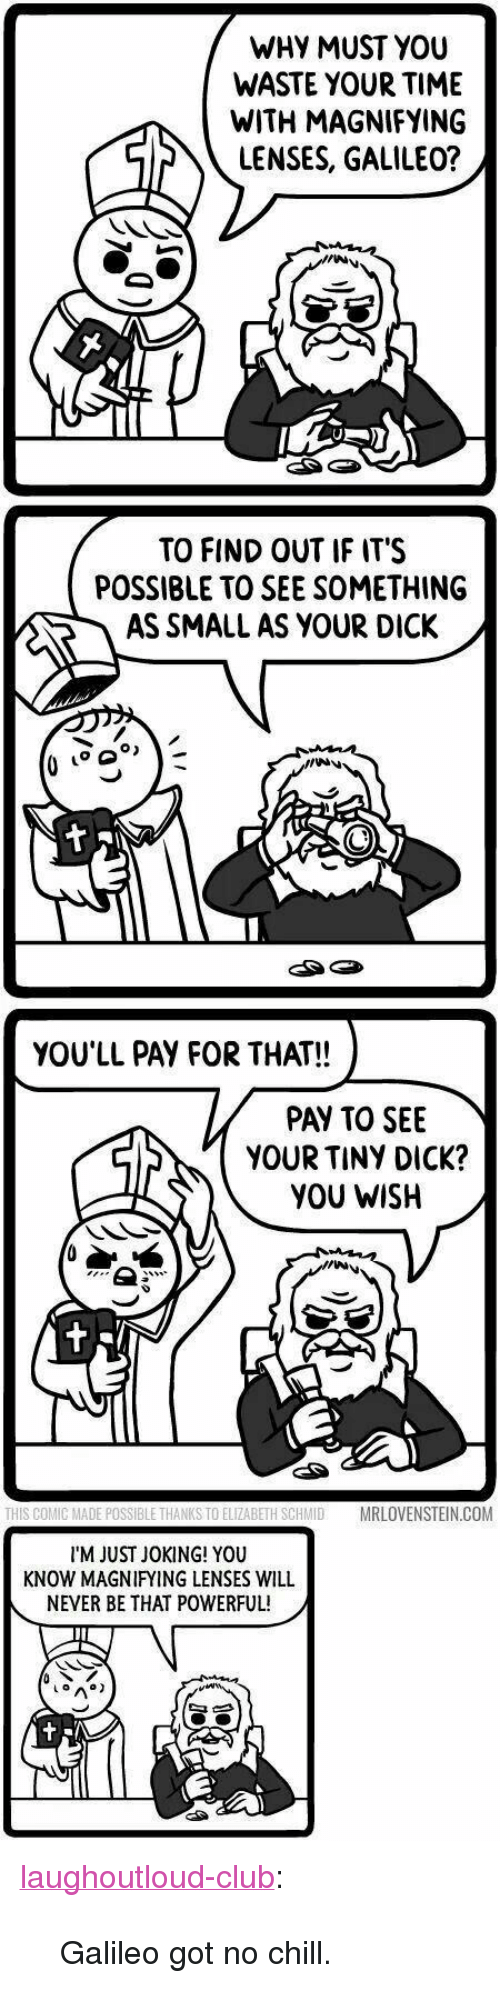 "Chill, Club, and No Chill: WHY MUST YOU  WASTE YOUR TIME  WITH MAGNIFYING  LENSES, GALILEO?  TO FIND OUT IF IT'S  POSSIBLE TO SEE SOMETHING  AS SMALL AS YOUR DICK /  go  YOU'LL PAY FOR THAT!!  PAY TO SEE  YOUR TINY DICK?  YOU WISH  THIS COMIC MADE POSSIBLE THANKS TO ELIZABETH SCHMIDMRLOVENSTEIN.COM  I'M JUST JOKING! YOU  KNOW MAGNIFYING LENSES WILL  NEVER BE THAT POWERFUL! <p><a href=""http://laughoutloud-club.tumblr.com/post/160370753925/galileo-got-no-chill"" class=""tumblr_blog"">laughoutloud-club</a>:</p>  <blockquote><p>Galileo got no chill.</p></blockquote>"